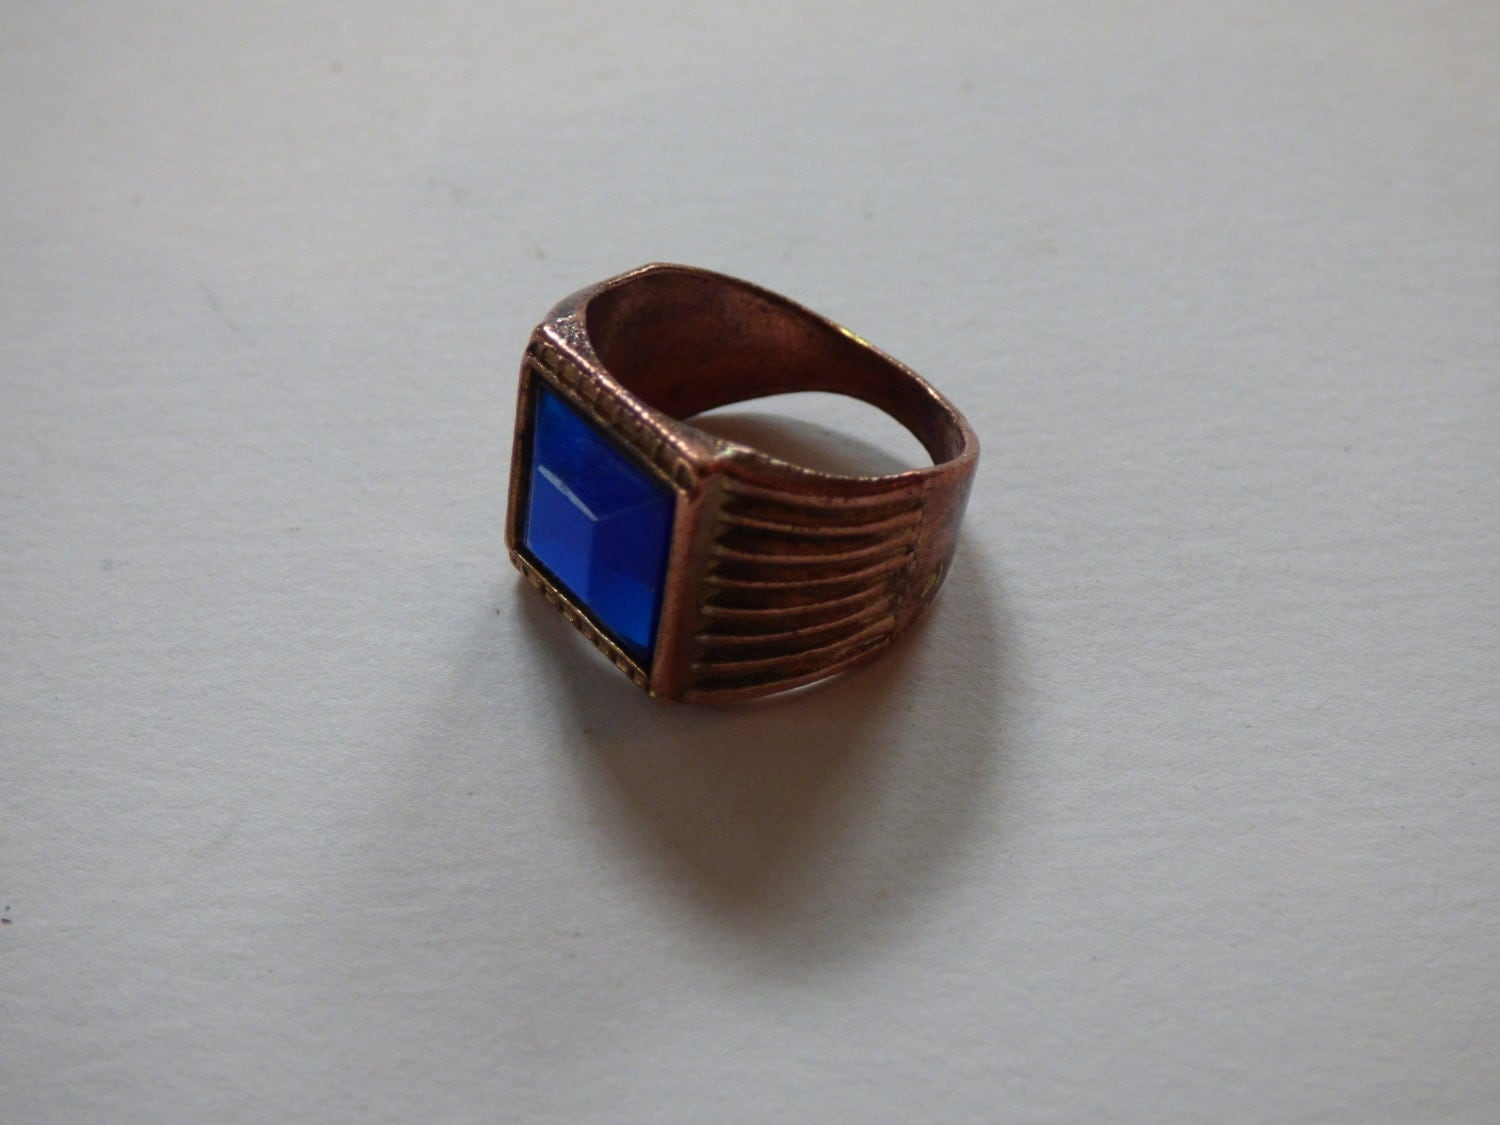 Very old costume ring copper and plastic or glass for Copper to plastic